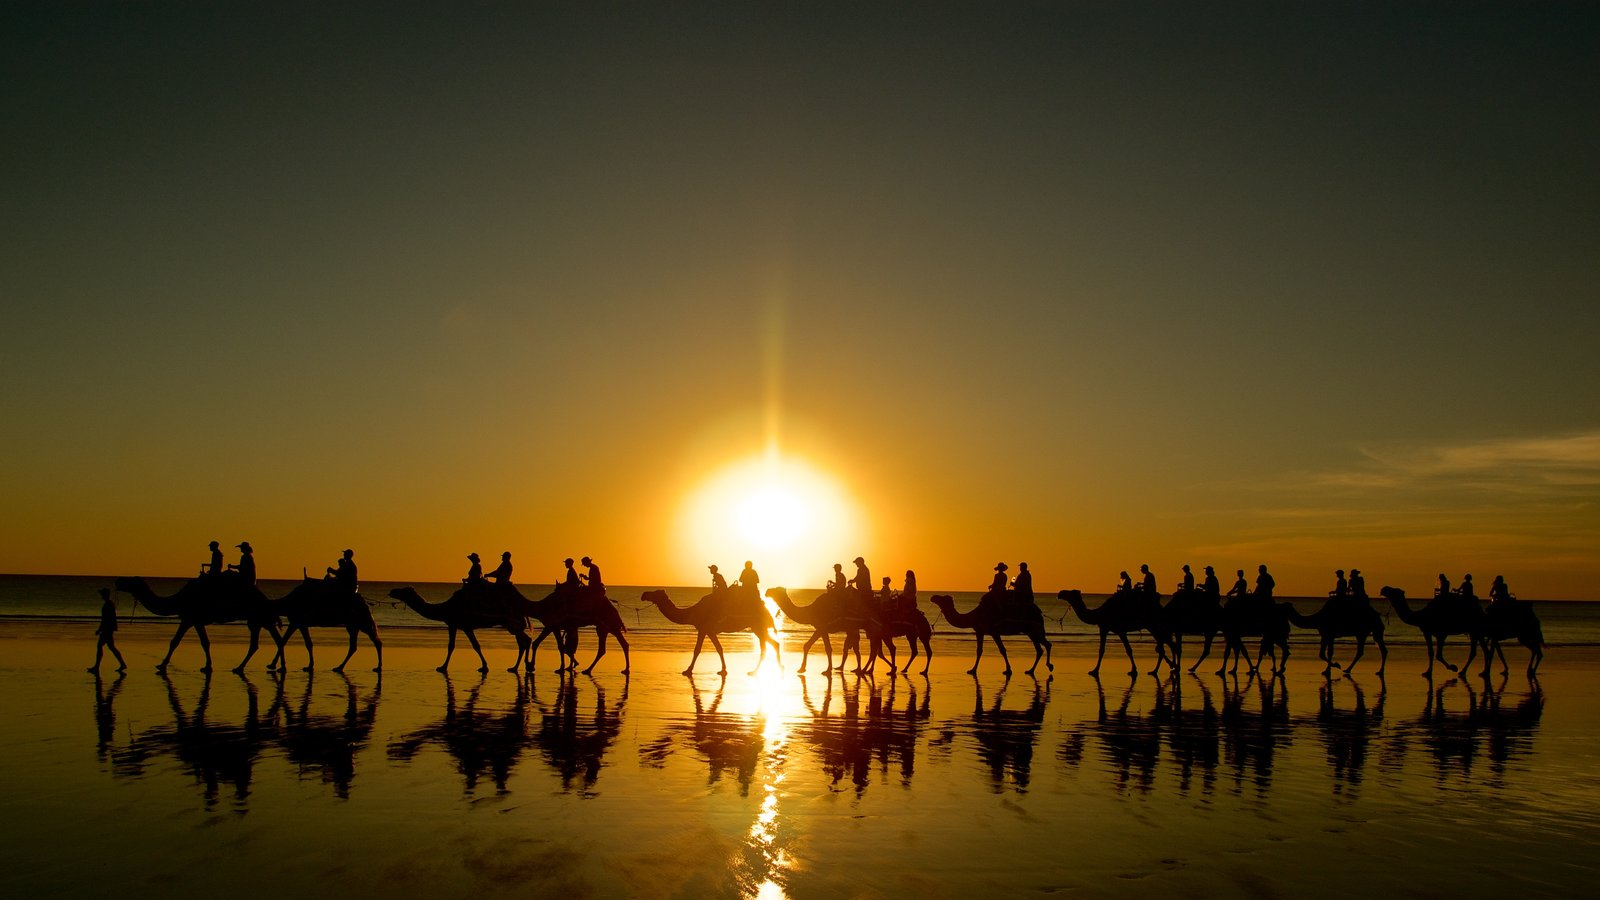 Cable Beach featuring a sandy beach, land animals and a sunset